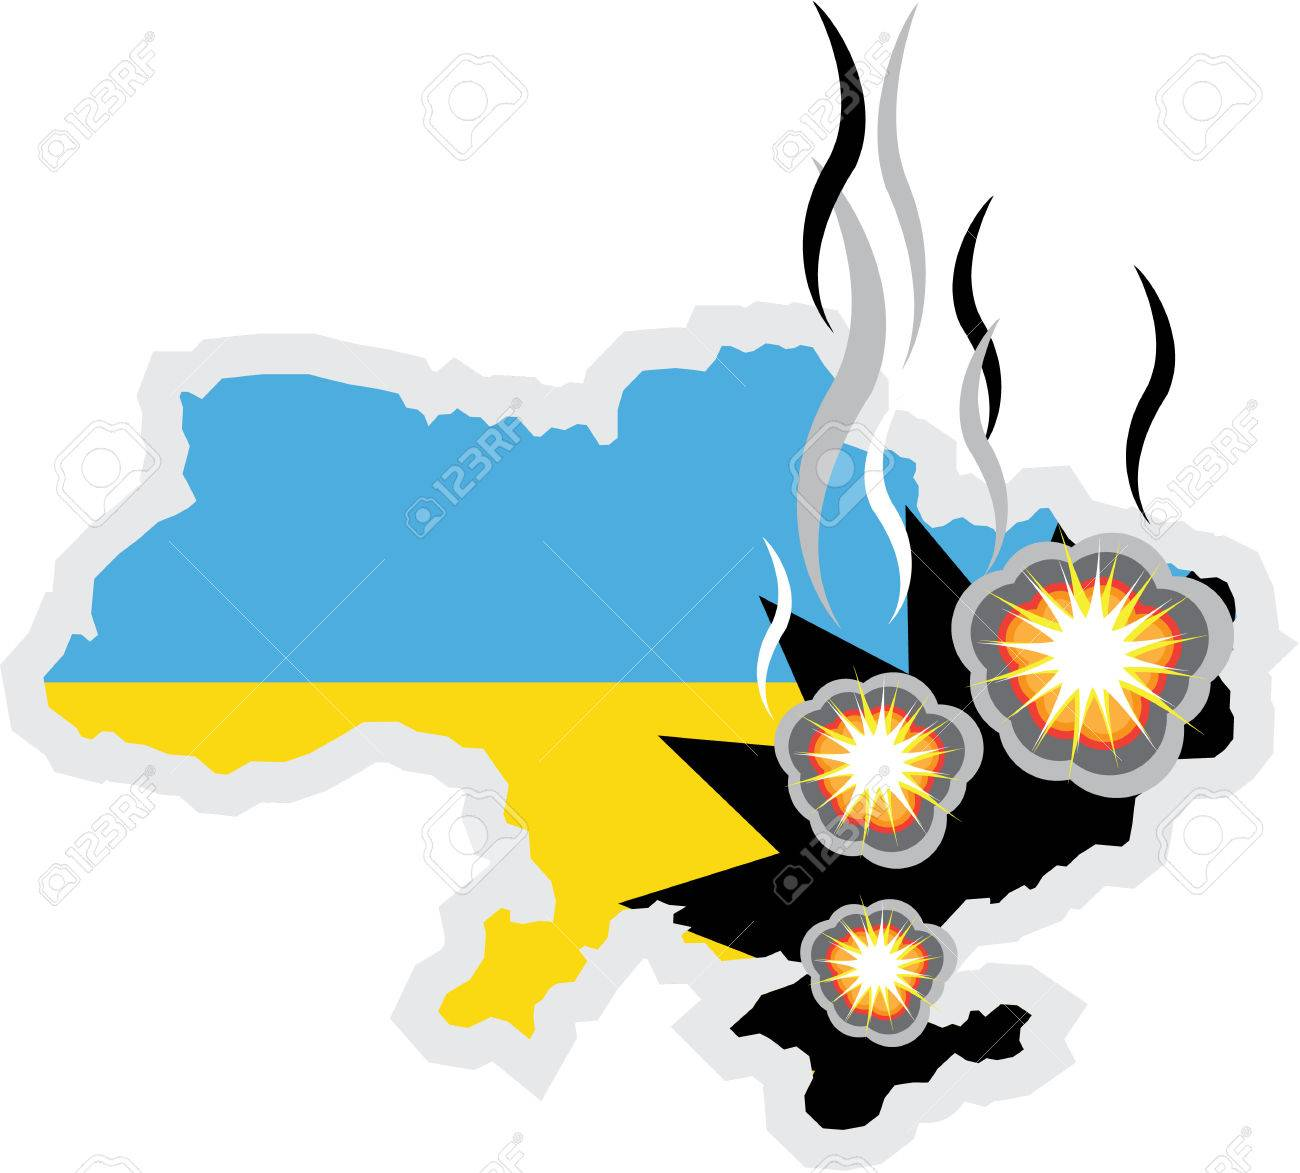 Ukraine conflict vector illustration clip.